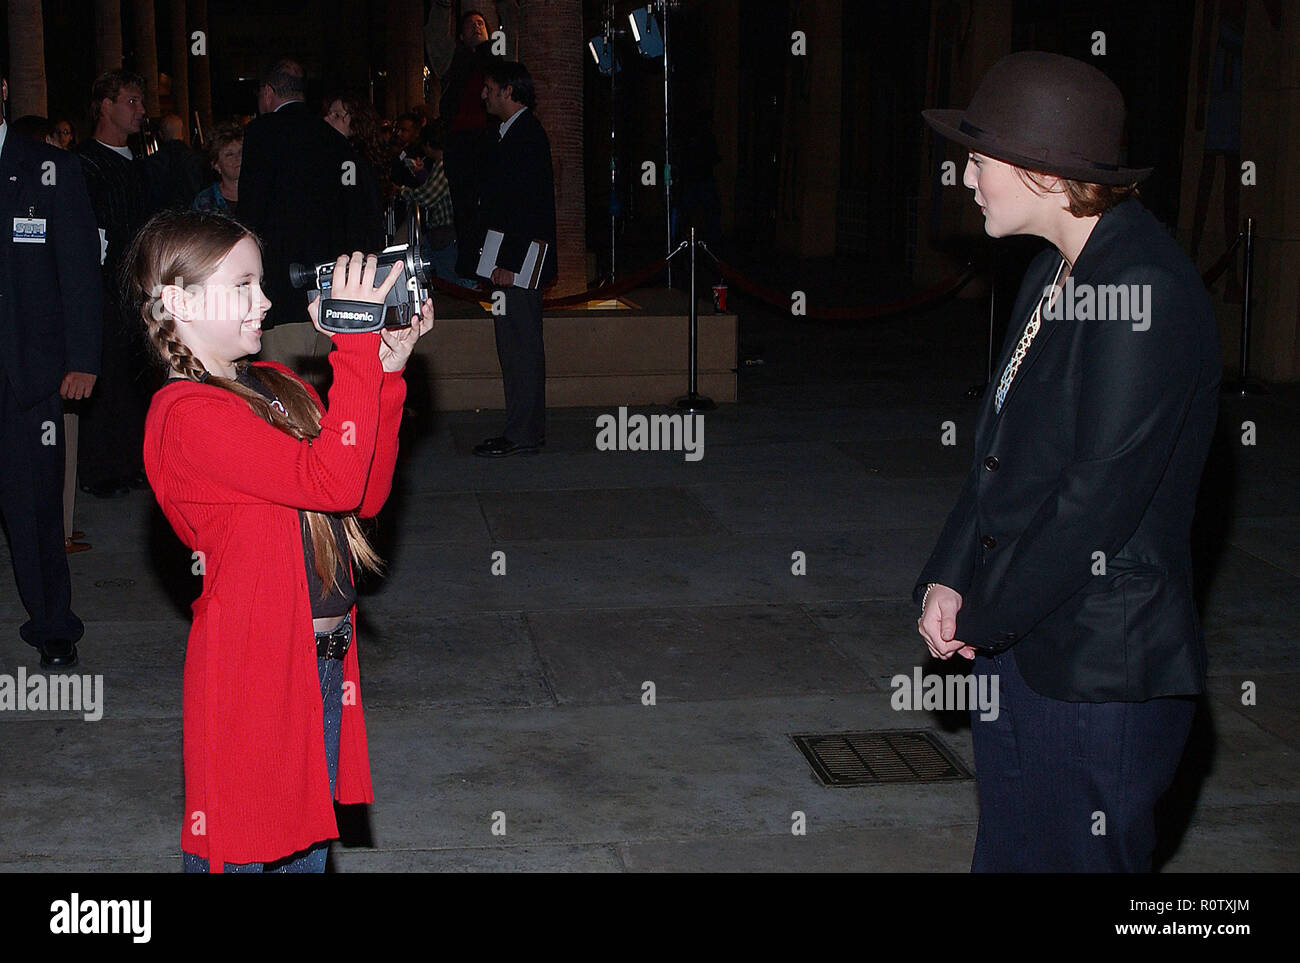 -            Barrymore_Chase02.jpgBarrymore_Chase02  Event in Hollywood Life - California, Red Carpet Event, USA, Film Industry, Celebrities, Photogra - Stock Image